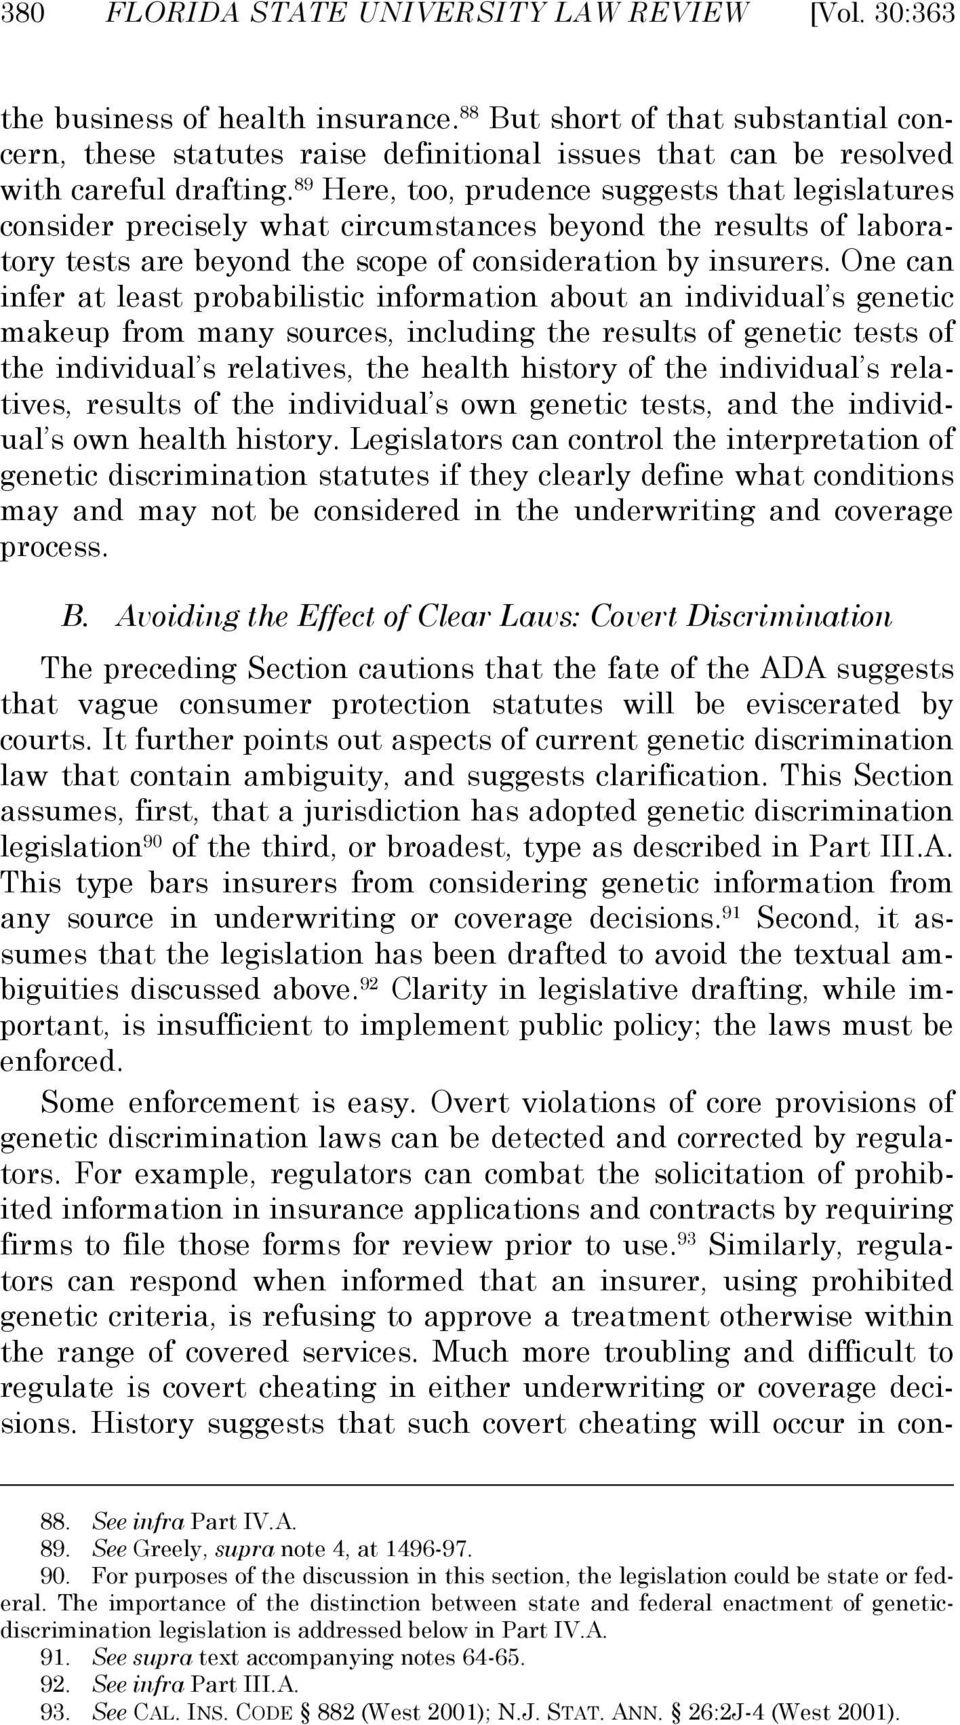 89 Here, too, prudence suggests that legislatures consider precisely what circumstances beyond the results of laboratory tests are beyond the scope of consideration by insurers.